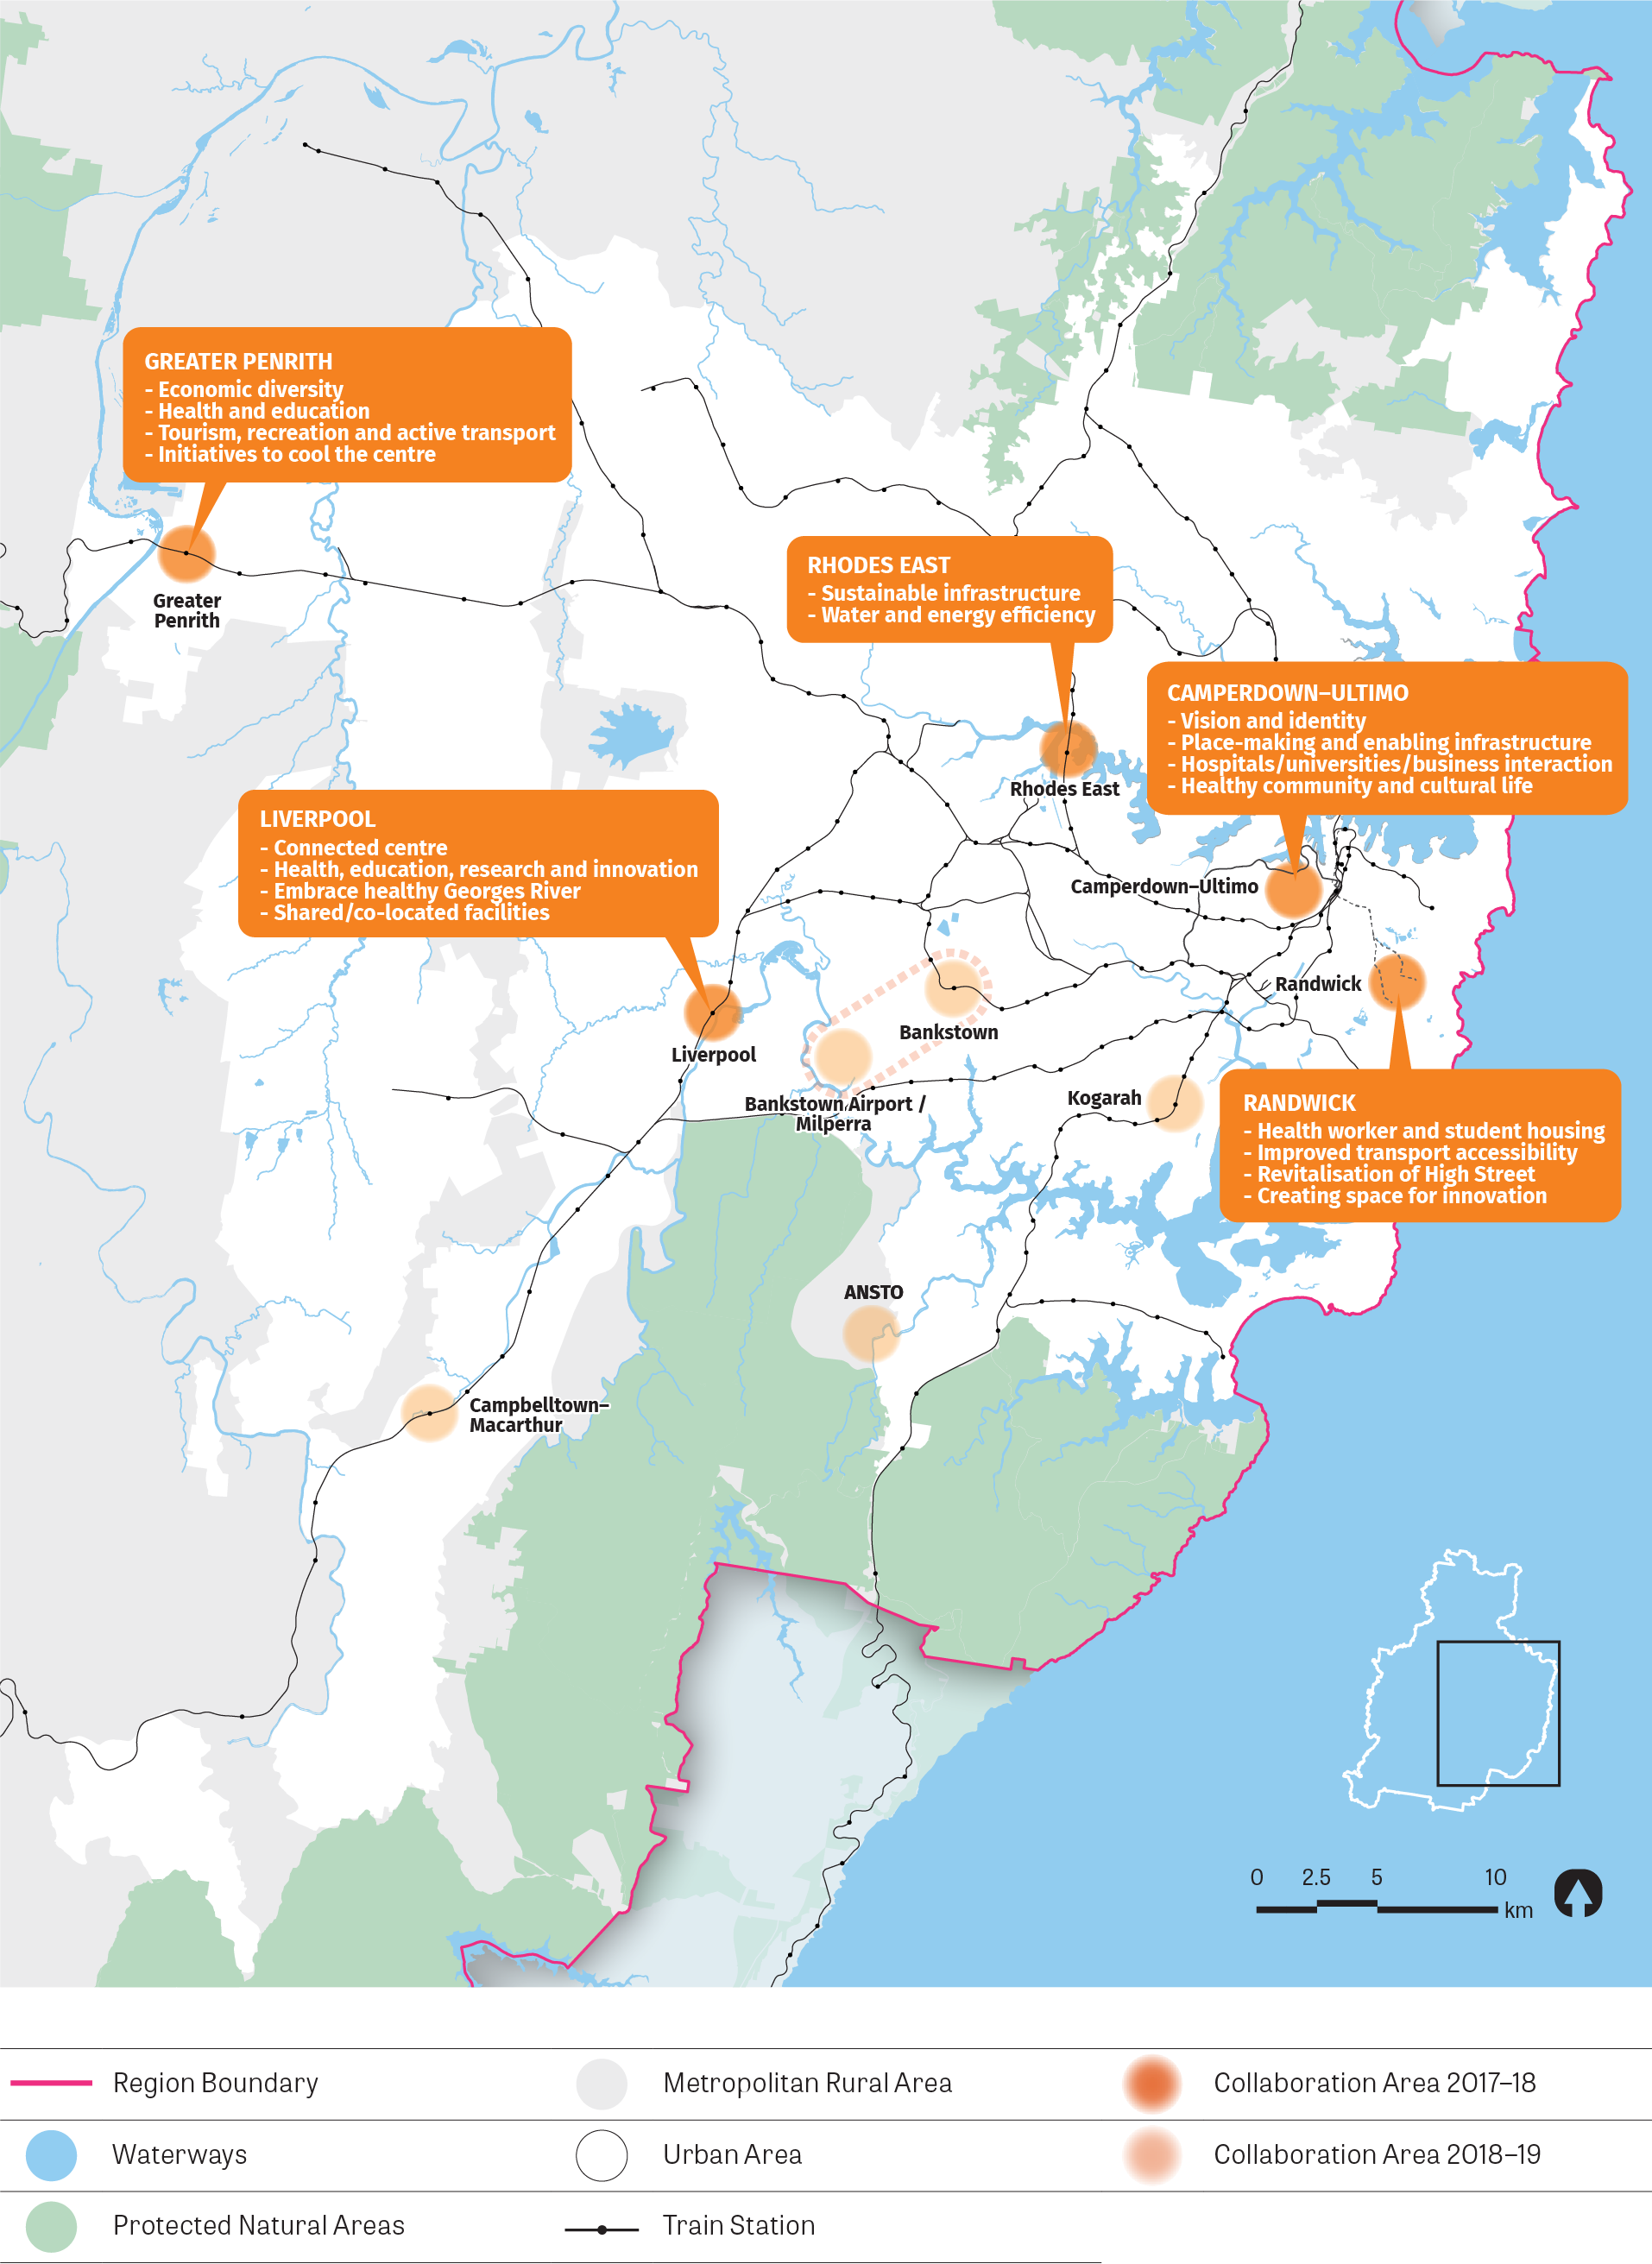 Figure 9: Map showing location of Greater Penrith, Rhodes-East, Camperdown-Ultimo, Liverpool and Randwick Collaboration Areas.